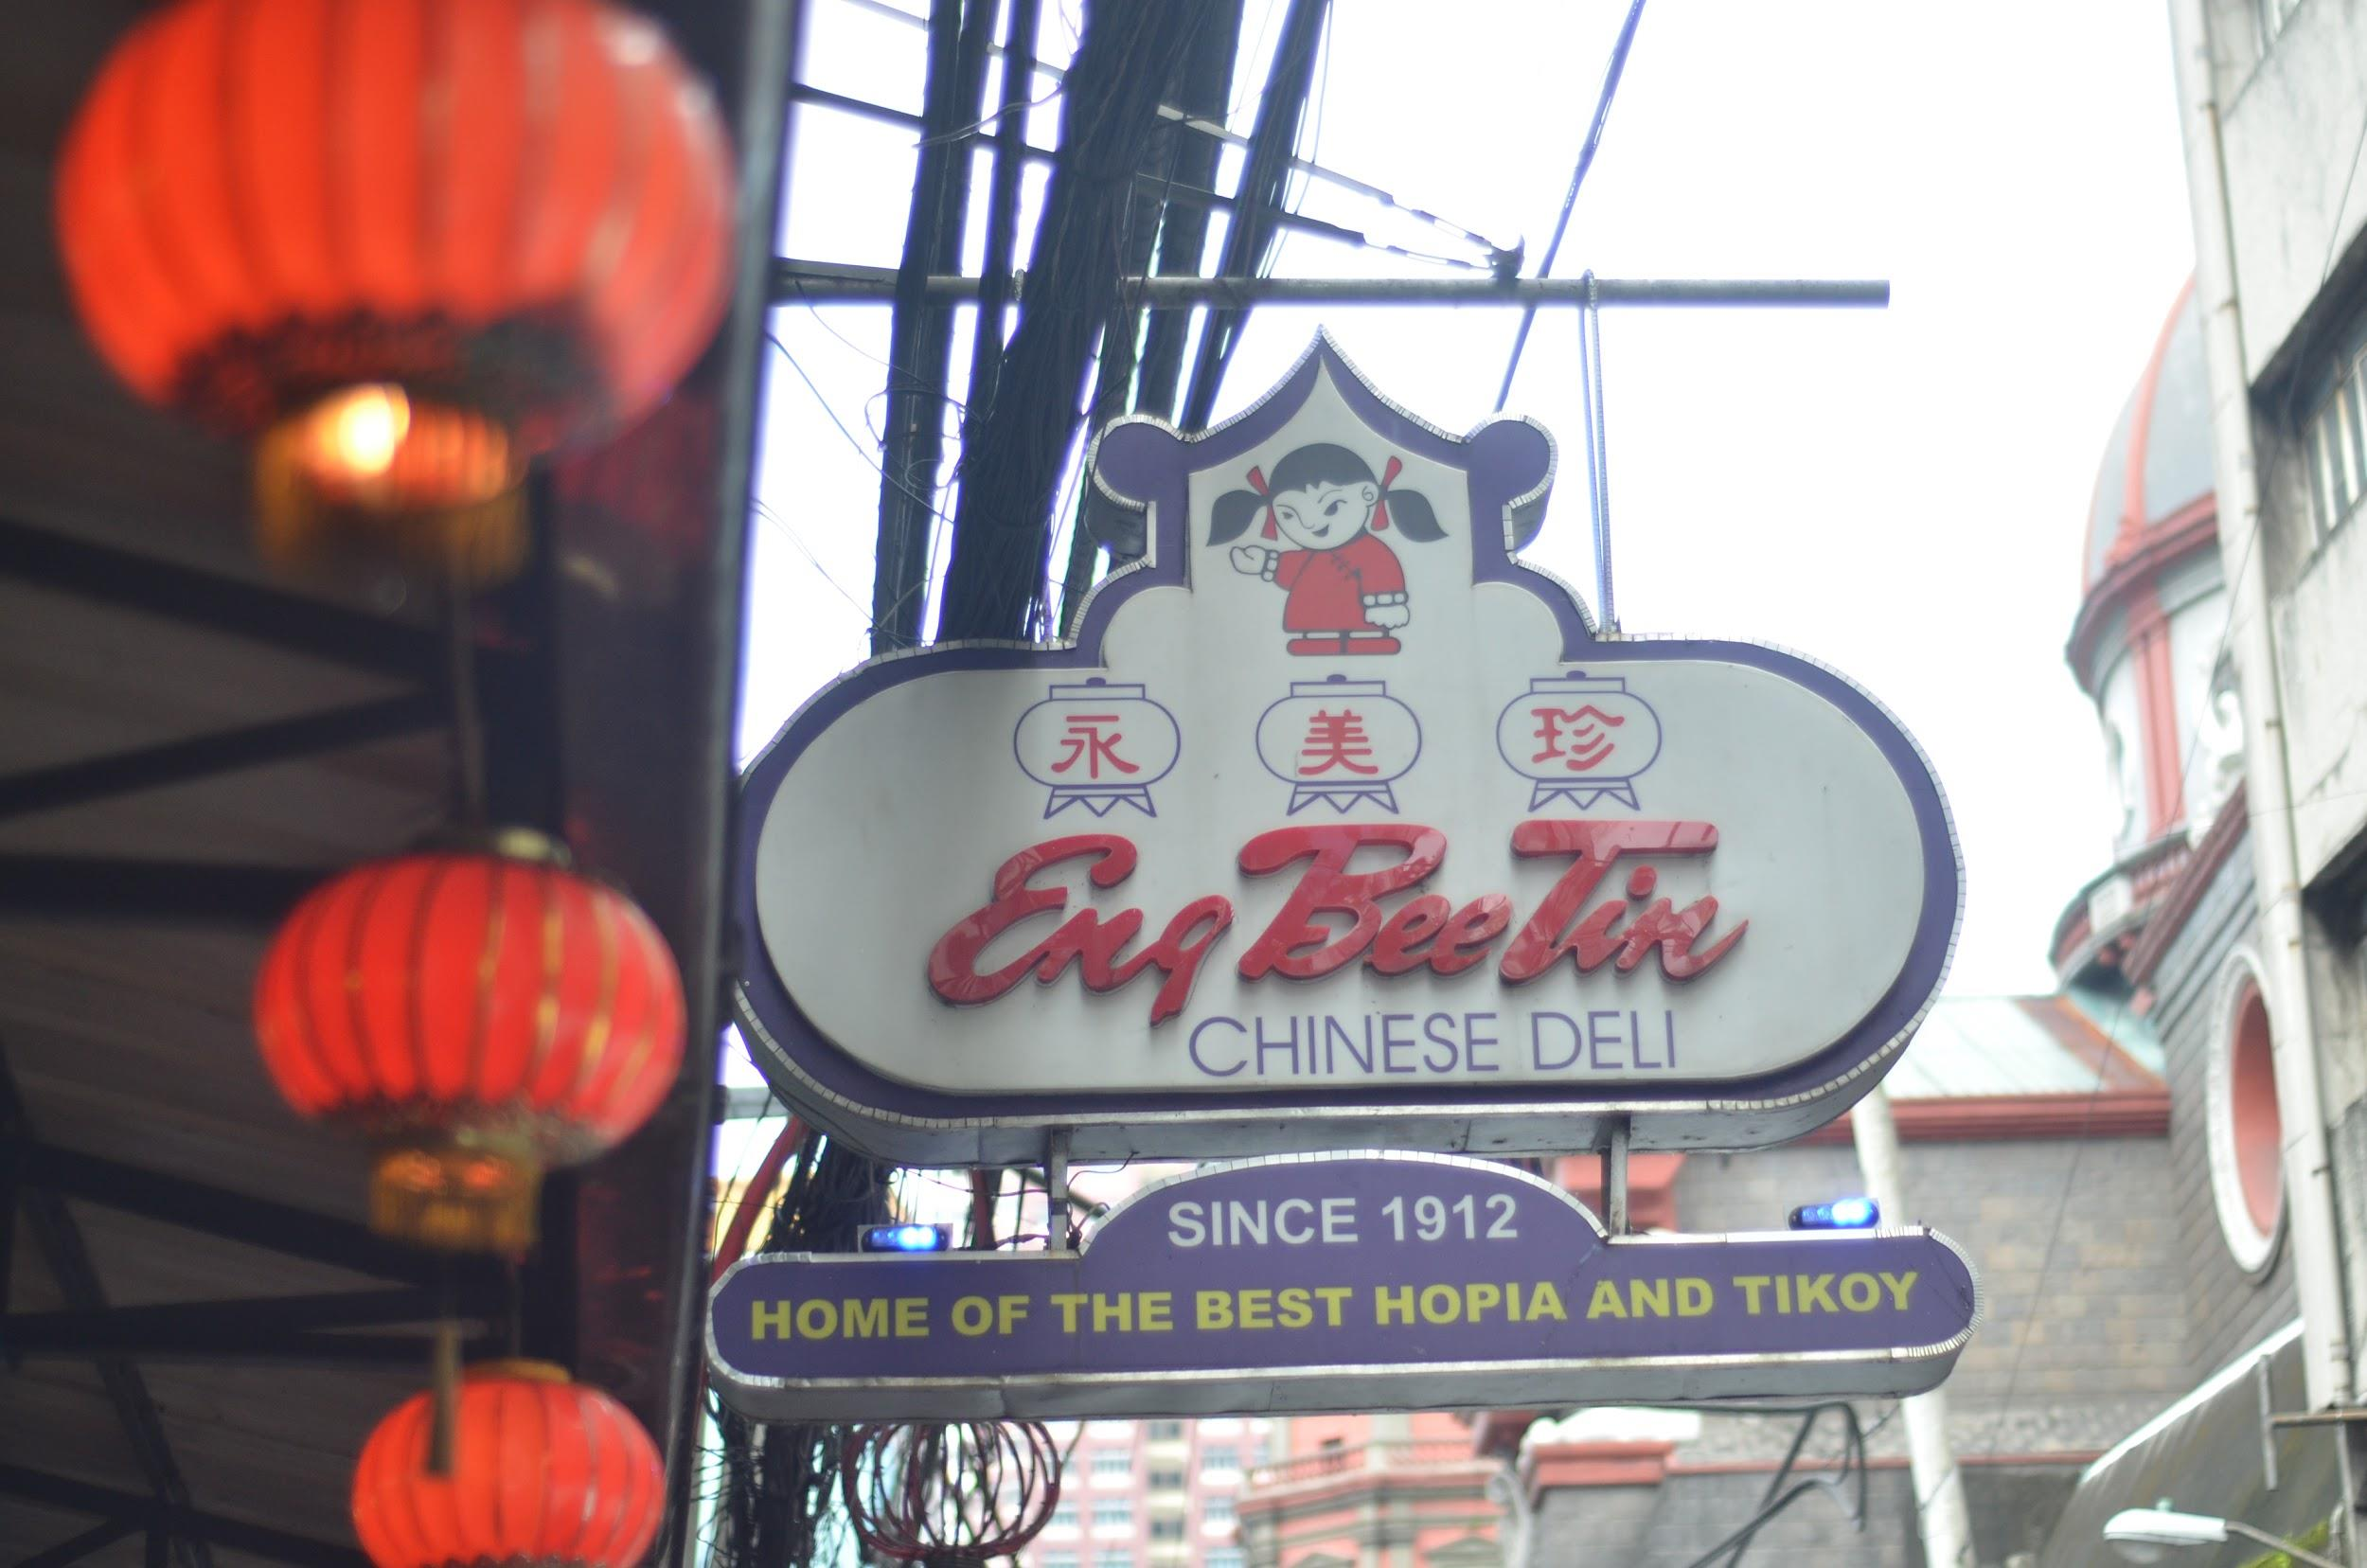 PIONEER. Eng Bee Tin has now been in the Philippines for over a hundred years.